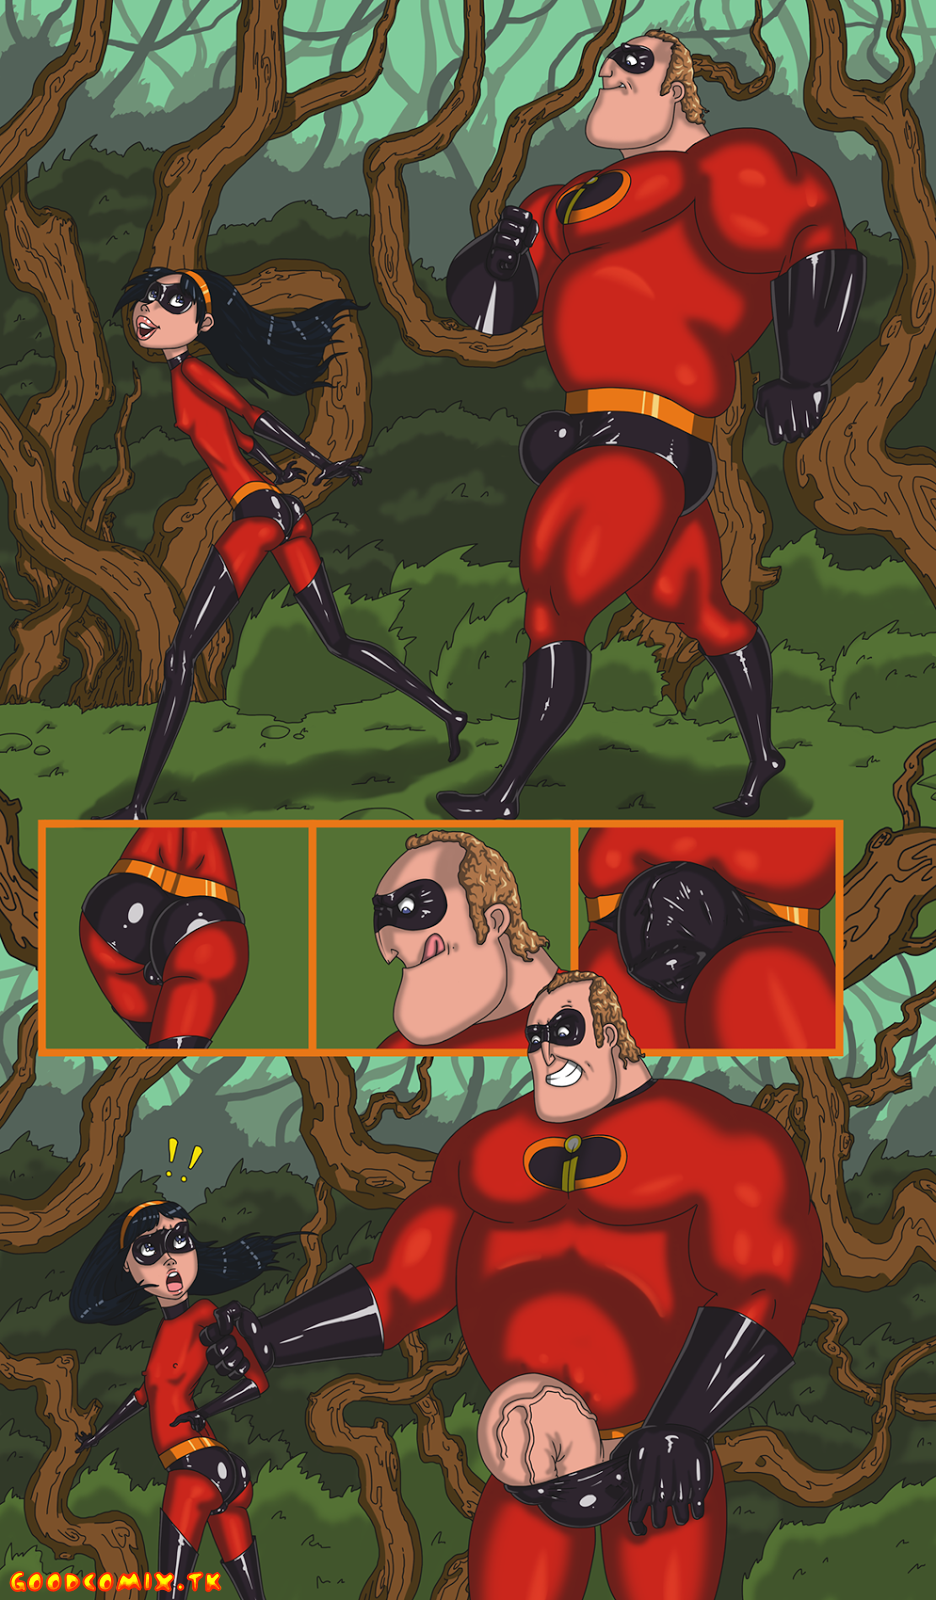 Goodcomix.tk The Incredibles - [Mnogobatko] - The Incredibles 1 - Walk With Dad